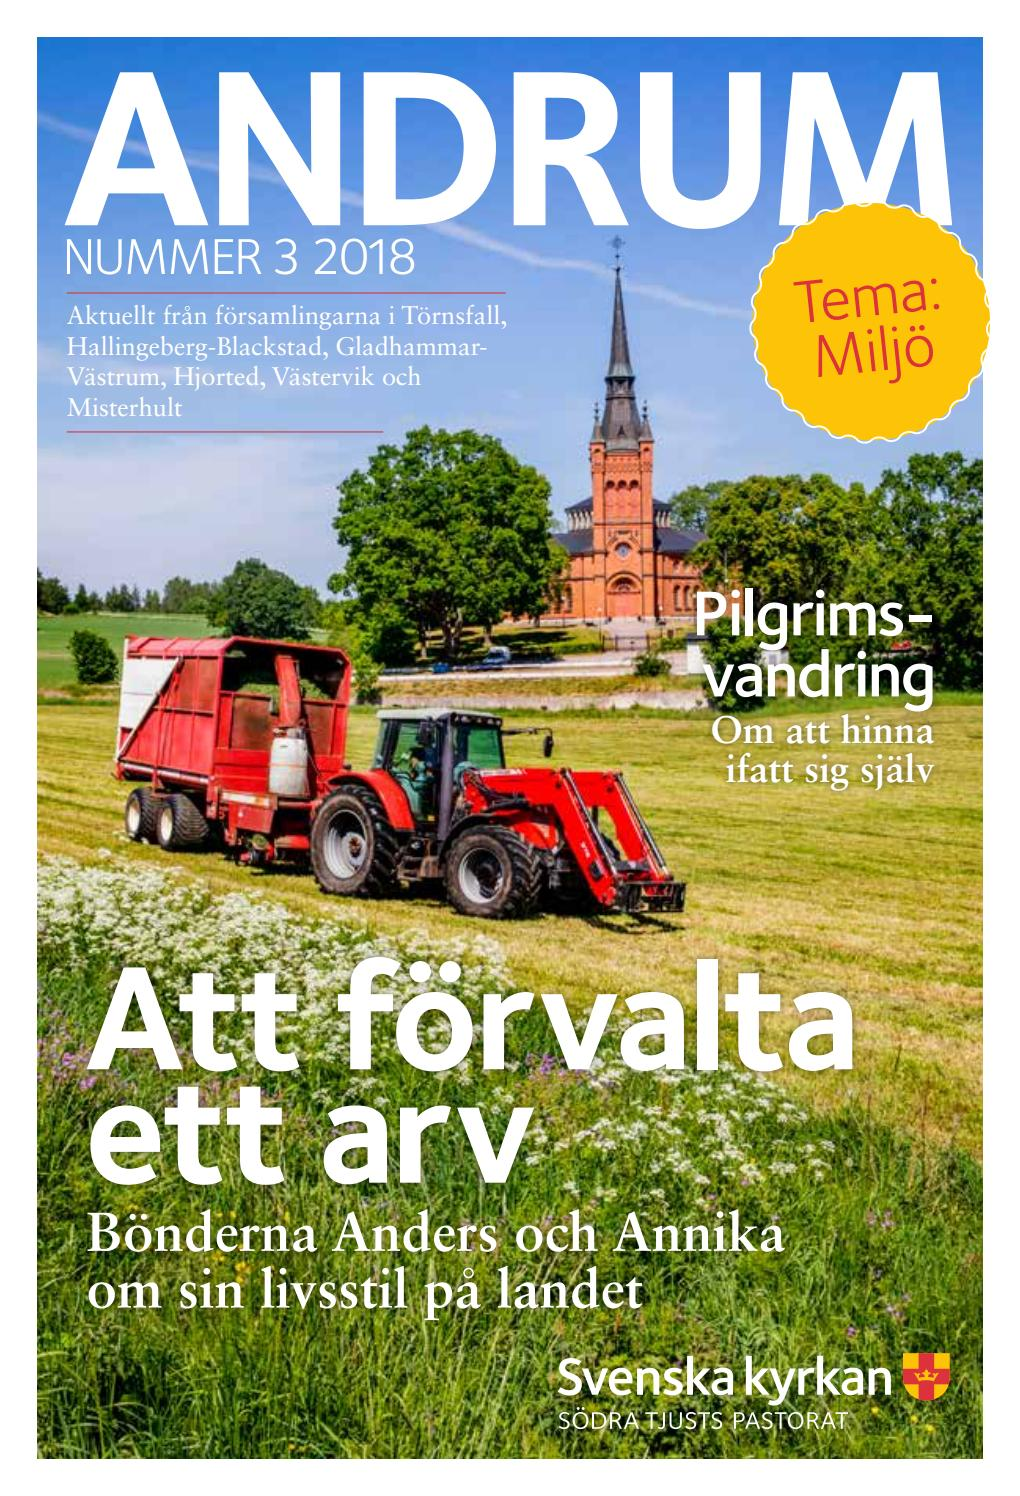 Andrum nr 2 2017 by Thomas Sjstrm - issuu